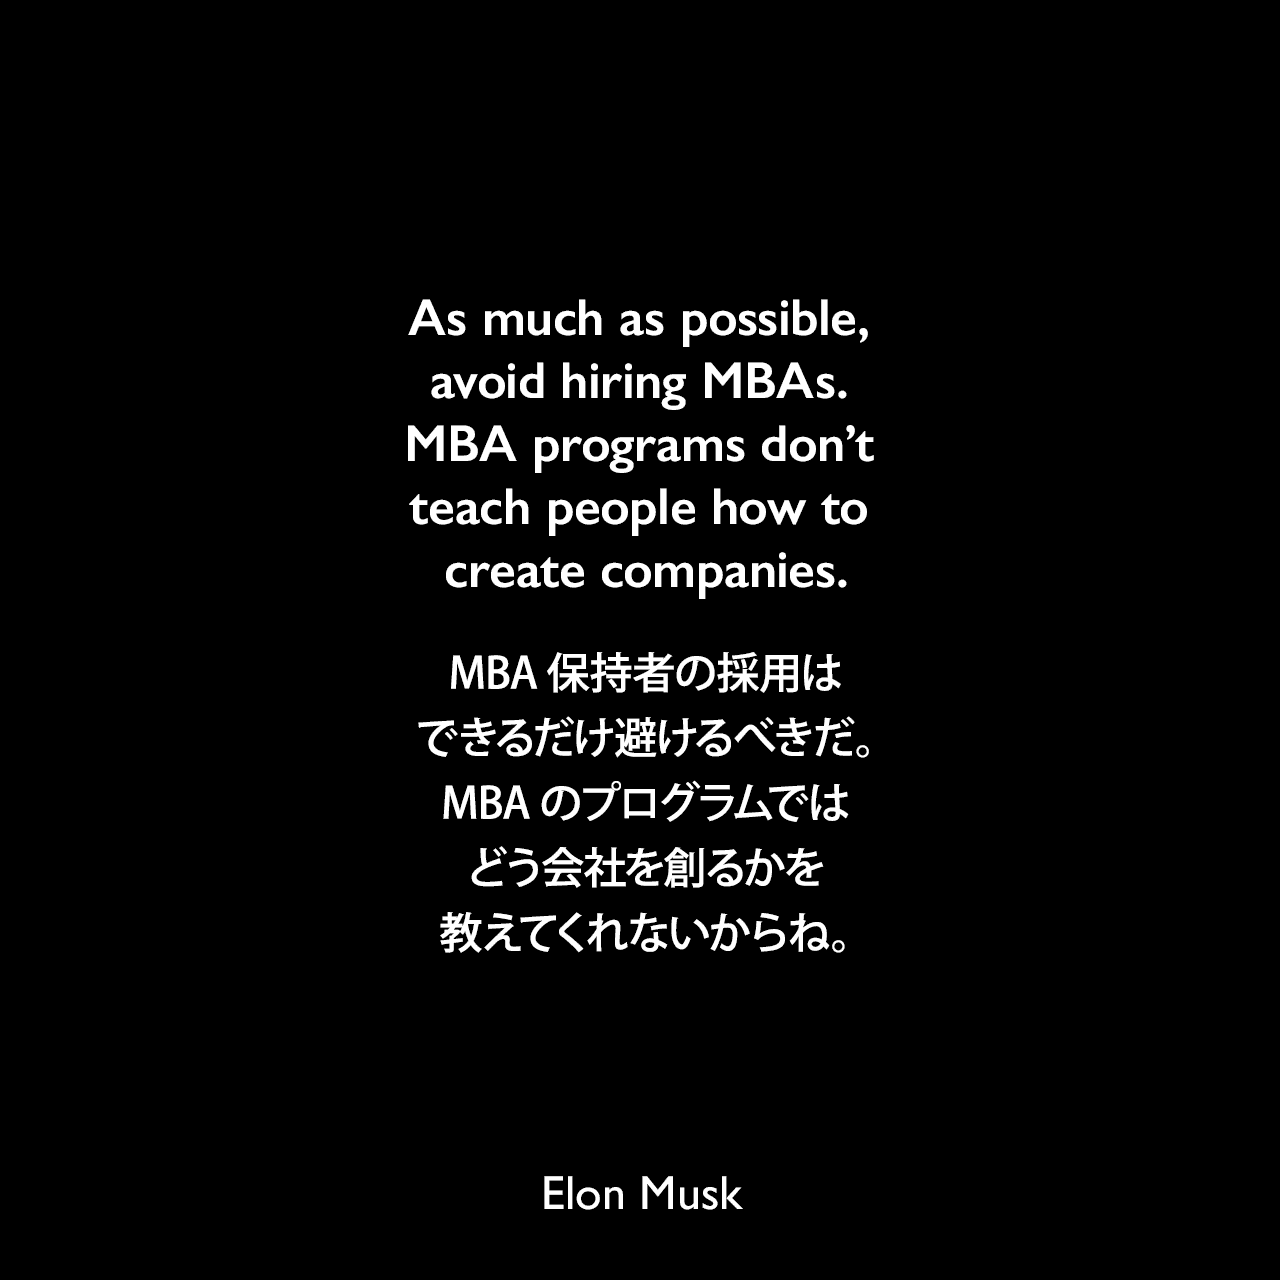 As much as possible, avoid hiring MBAs. MBA programs don't teach people how to create companies.MBA保持者の採用はできるだけ避けるべきだ。MBAのプログラムではどう会社を創るかを教えてくれないからね。Elon Musk